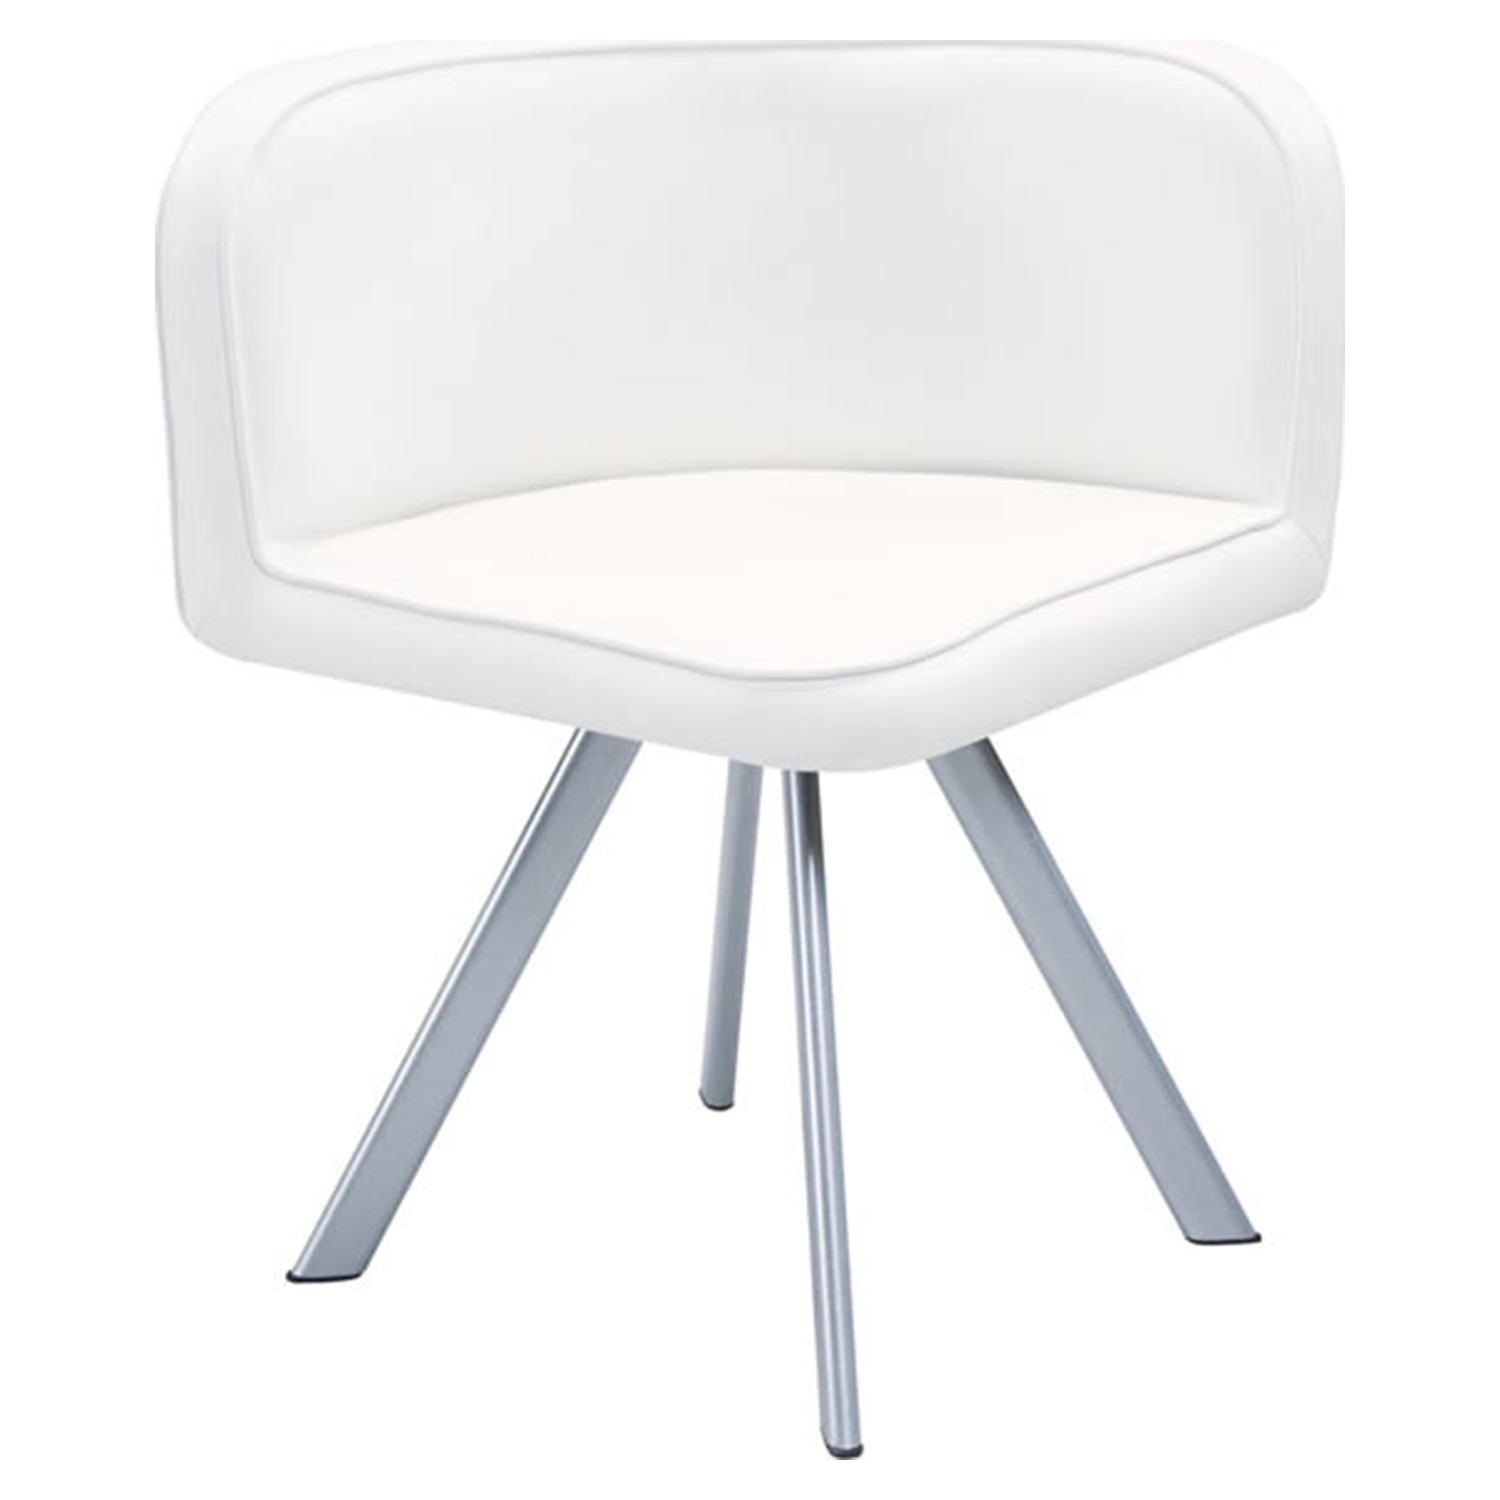 Emma Dining Chair - White (Set of 2) - GLO-D536-1-WH-DC-M